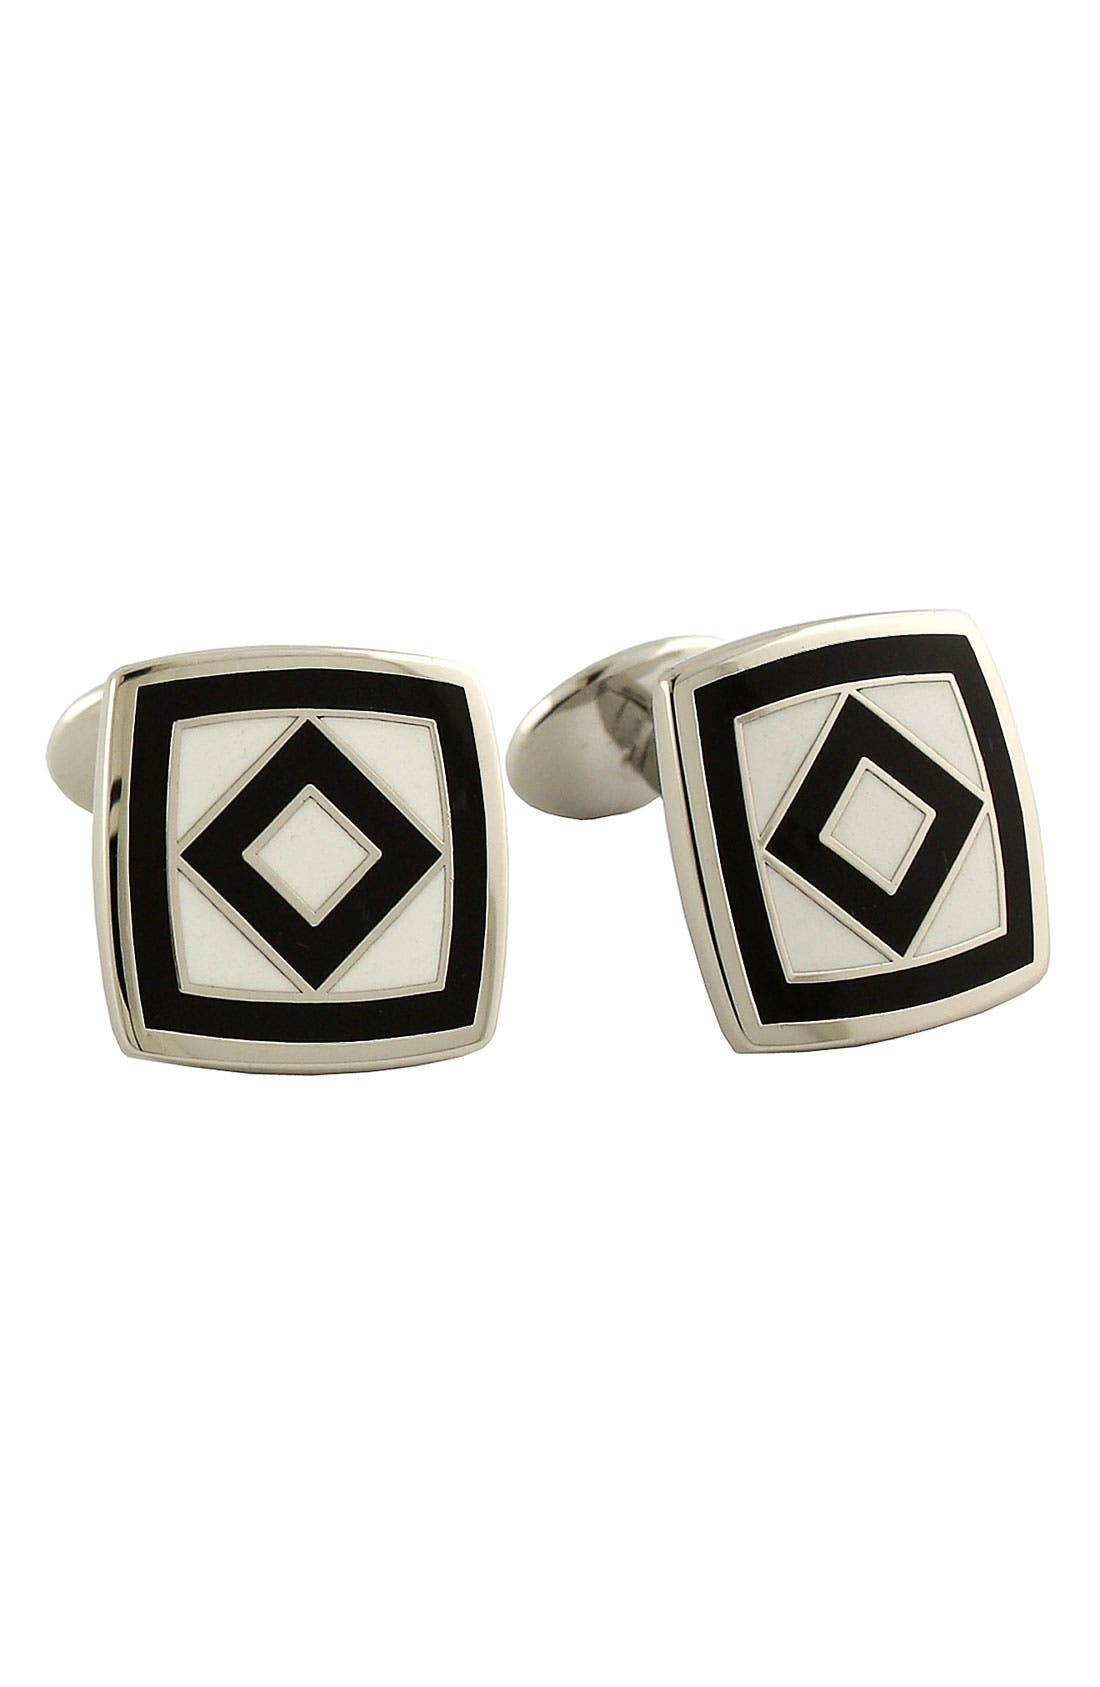 Main Image - David Donahue 'Diamond Square' Cuff Links